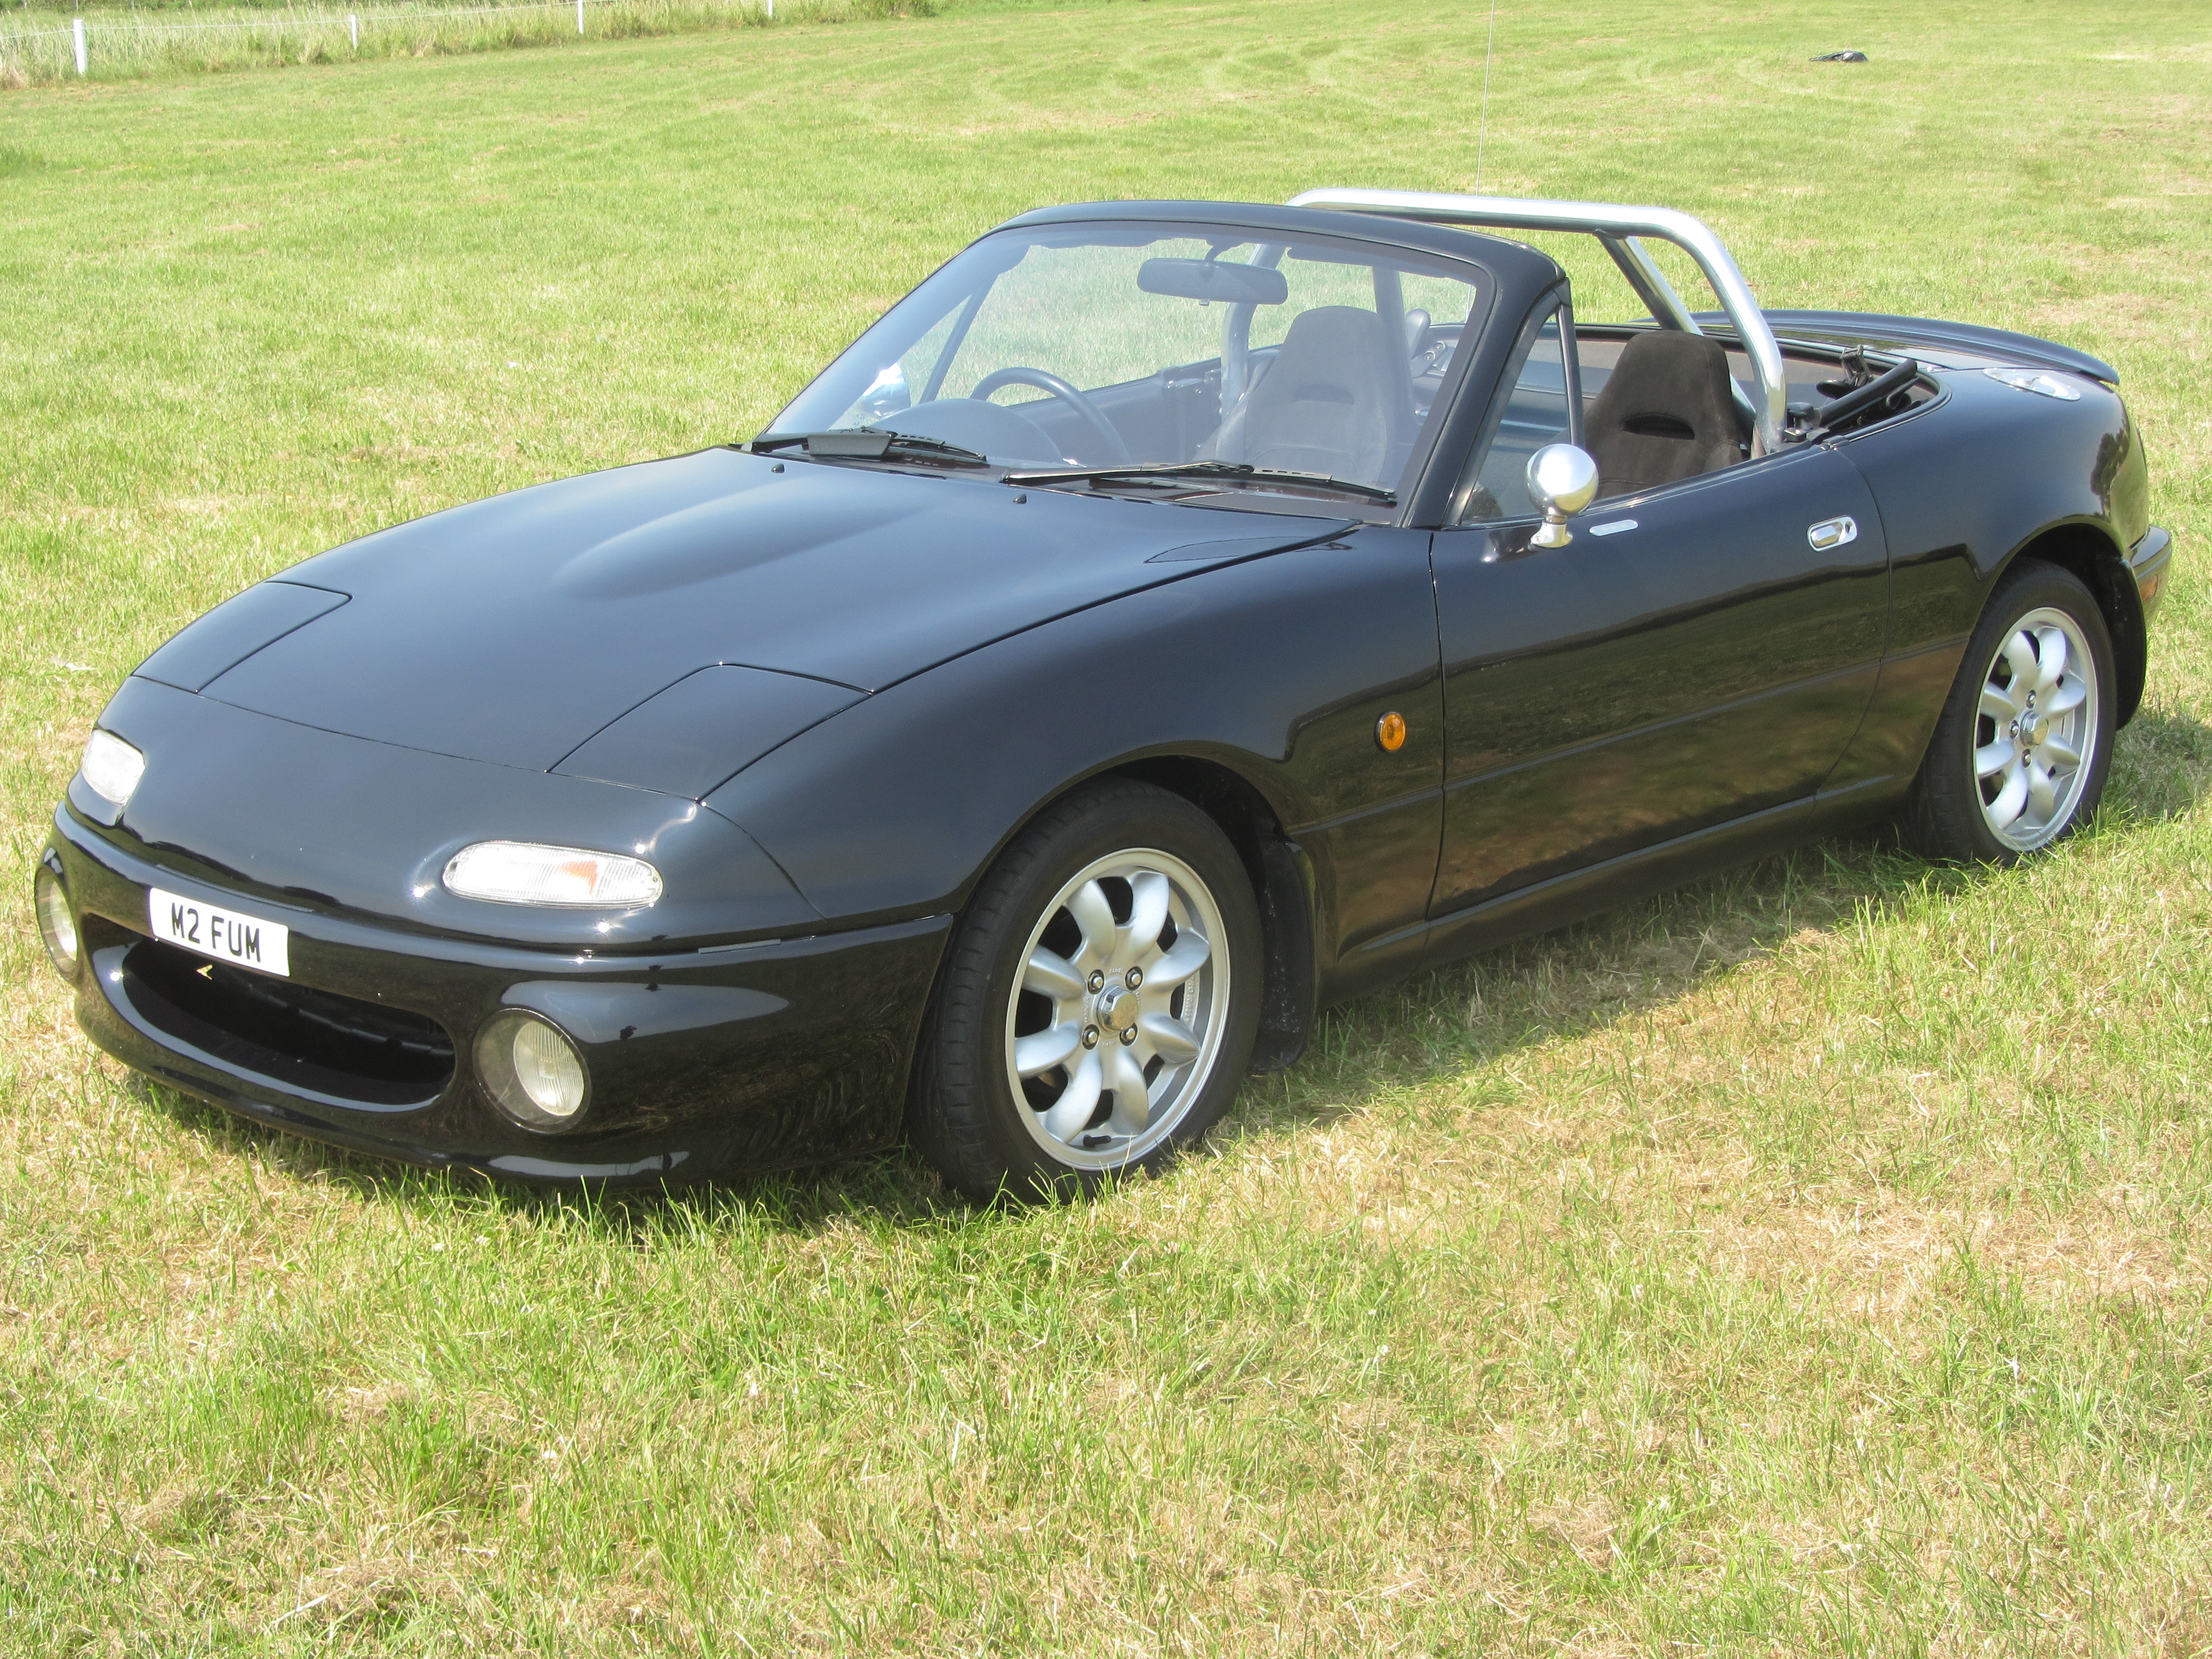 Mazda MX-5 Eunos Limited Edition M2 1001 Clubman Racer for sale